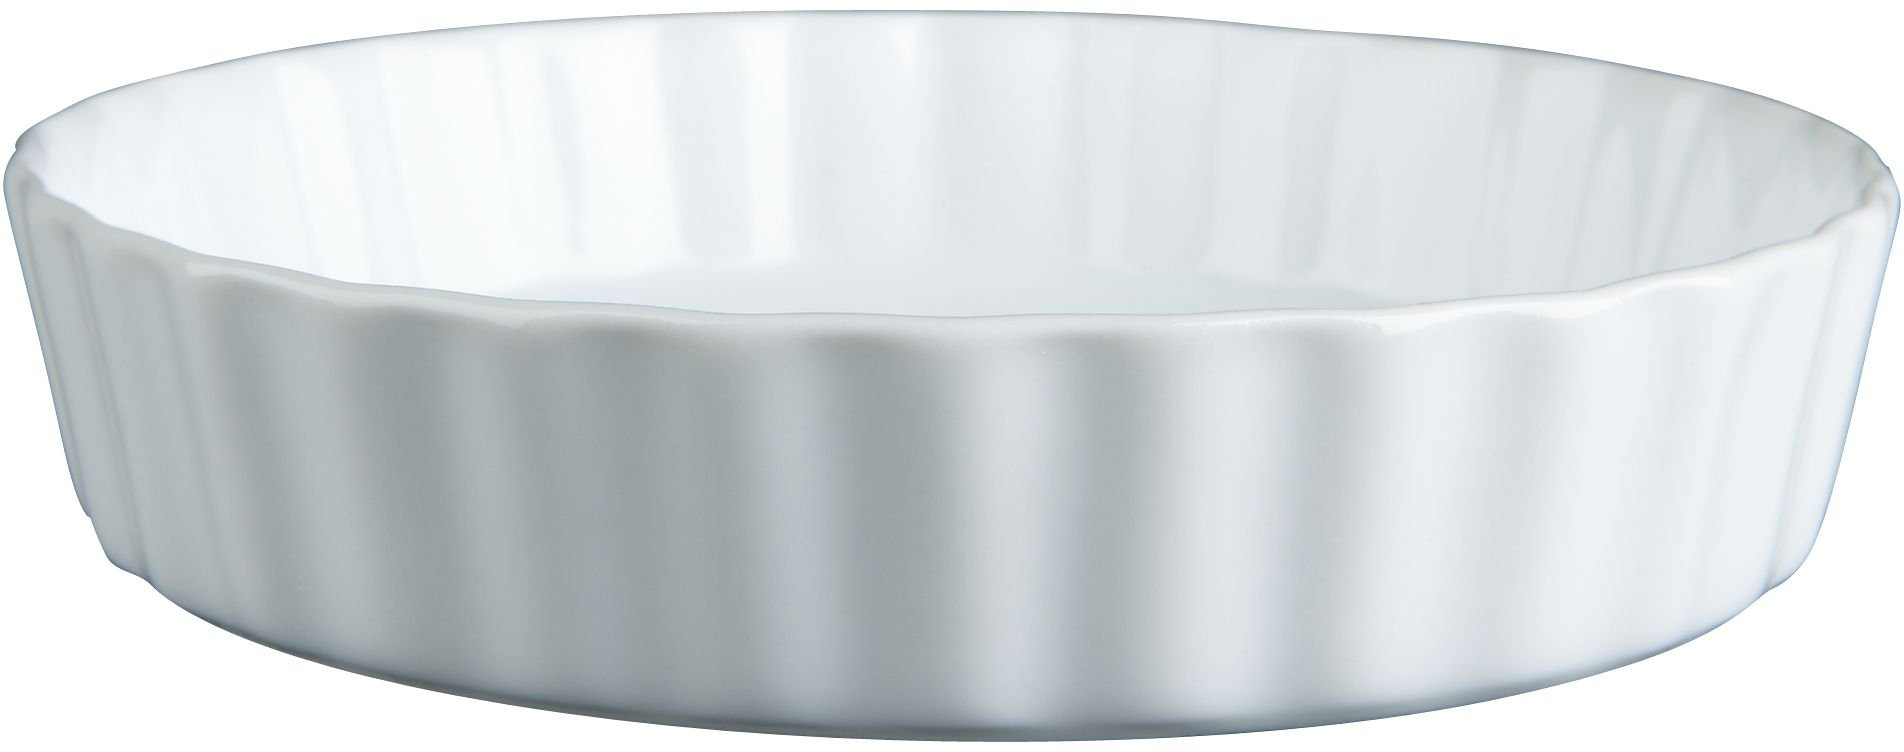 BIA Cordon Bleu - Set of 4-8 Ounce Individual White Porcelain Quiche or Crème Brulee Dishes - 7''